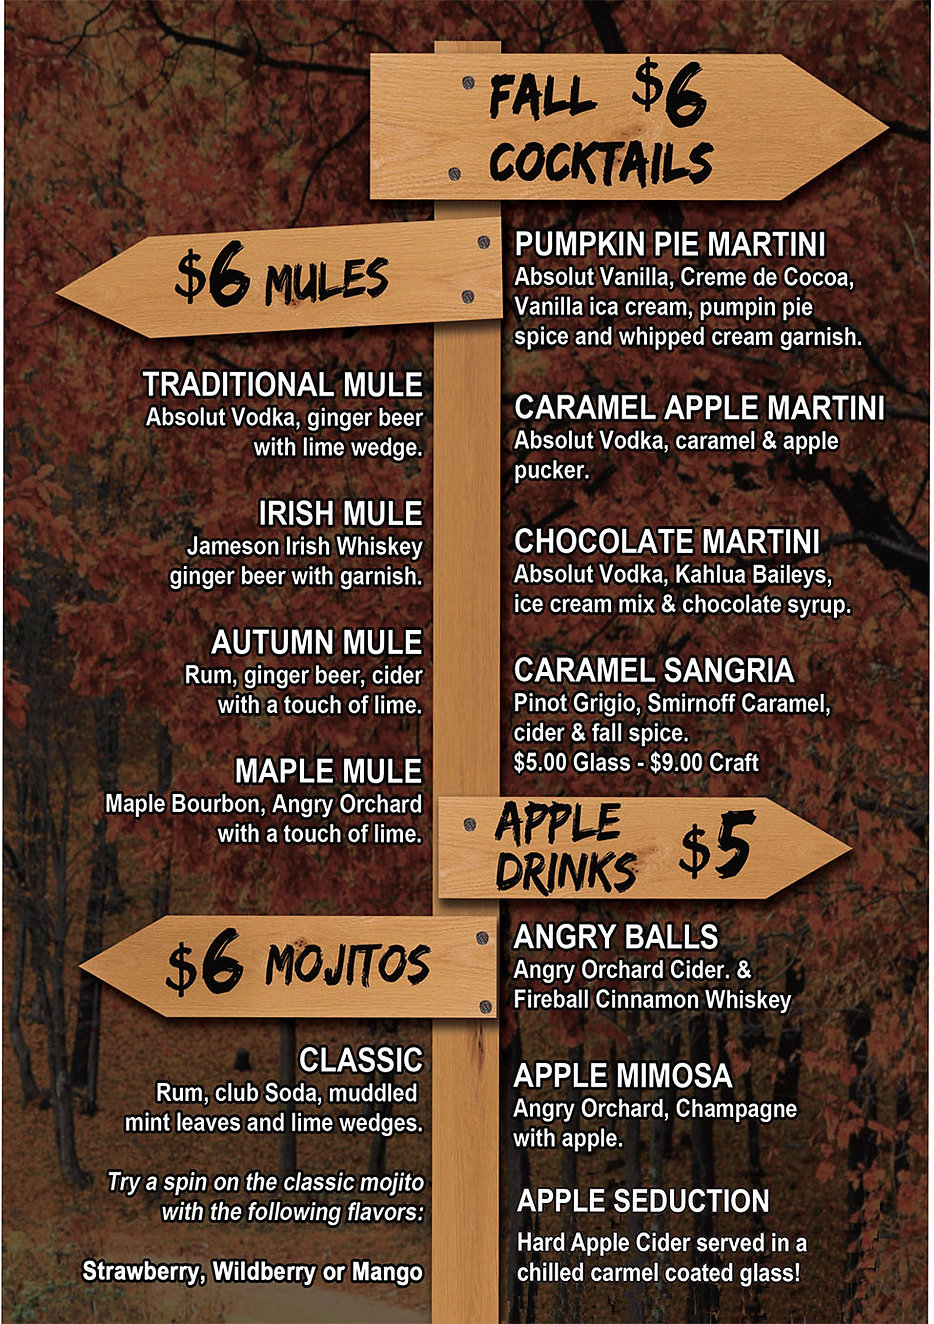 FALL DRINK MENU 2019.jpg